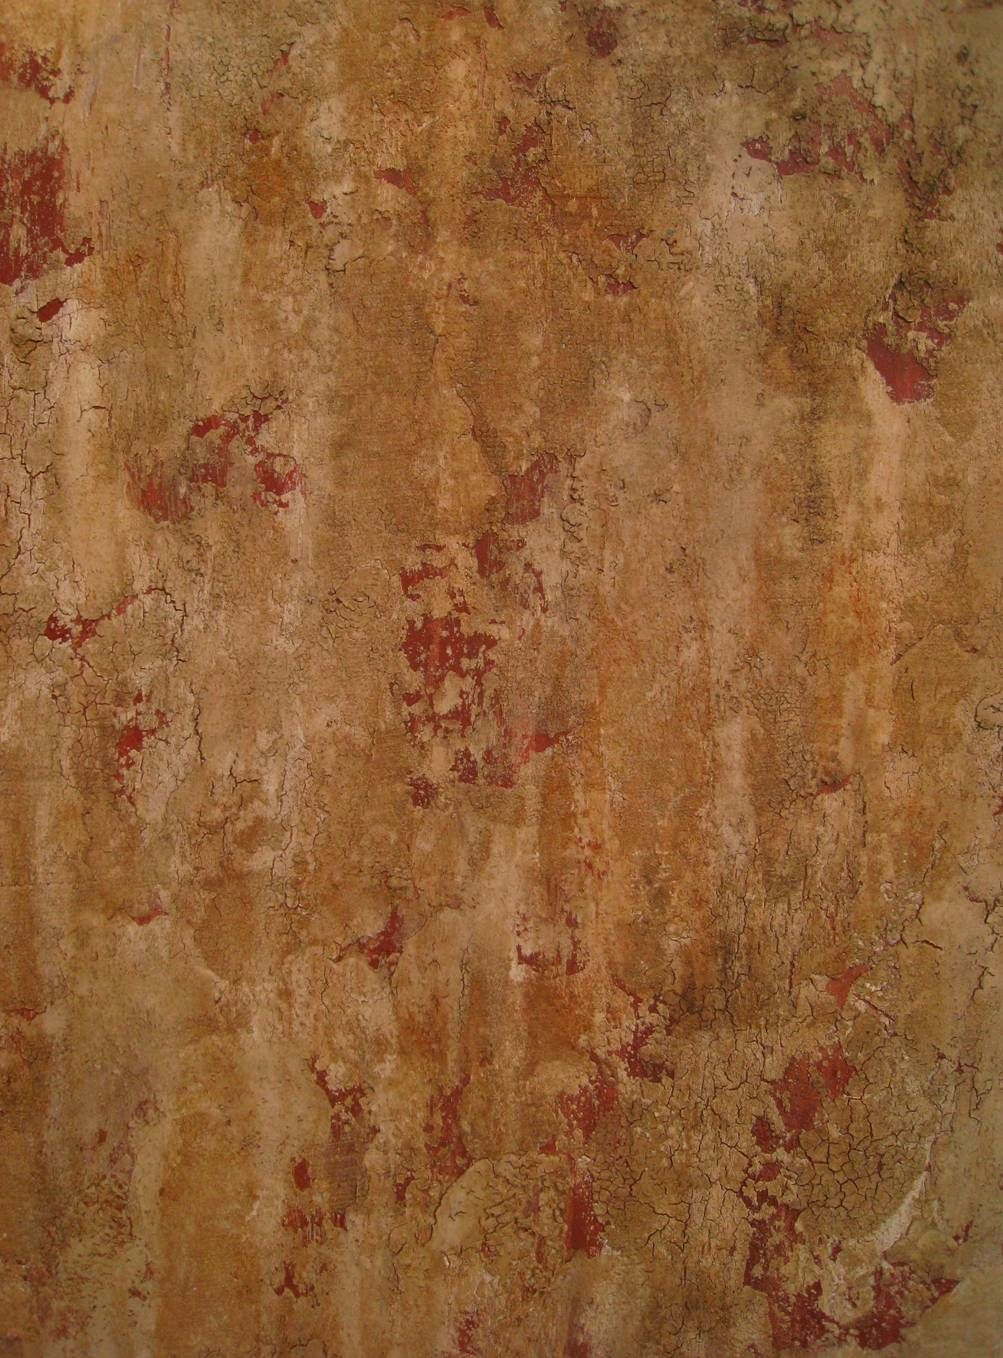 Tuscan faux finishes examples apadana group faux finishing tuscan faux finishes examples apadana group faux finishing archives apadana group altavistaventures Image collections